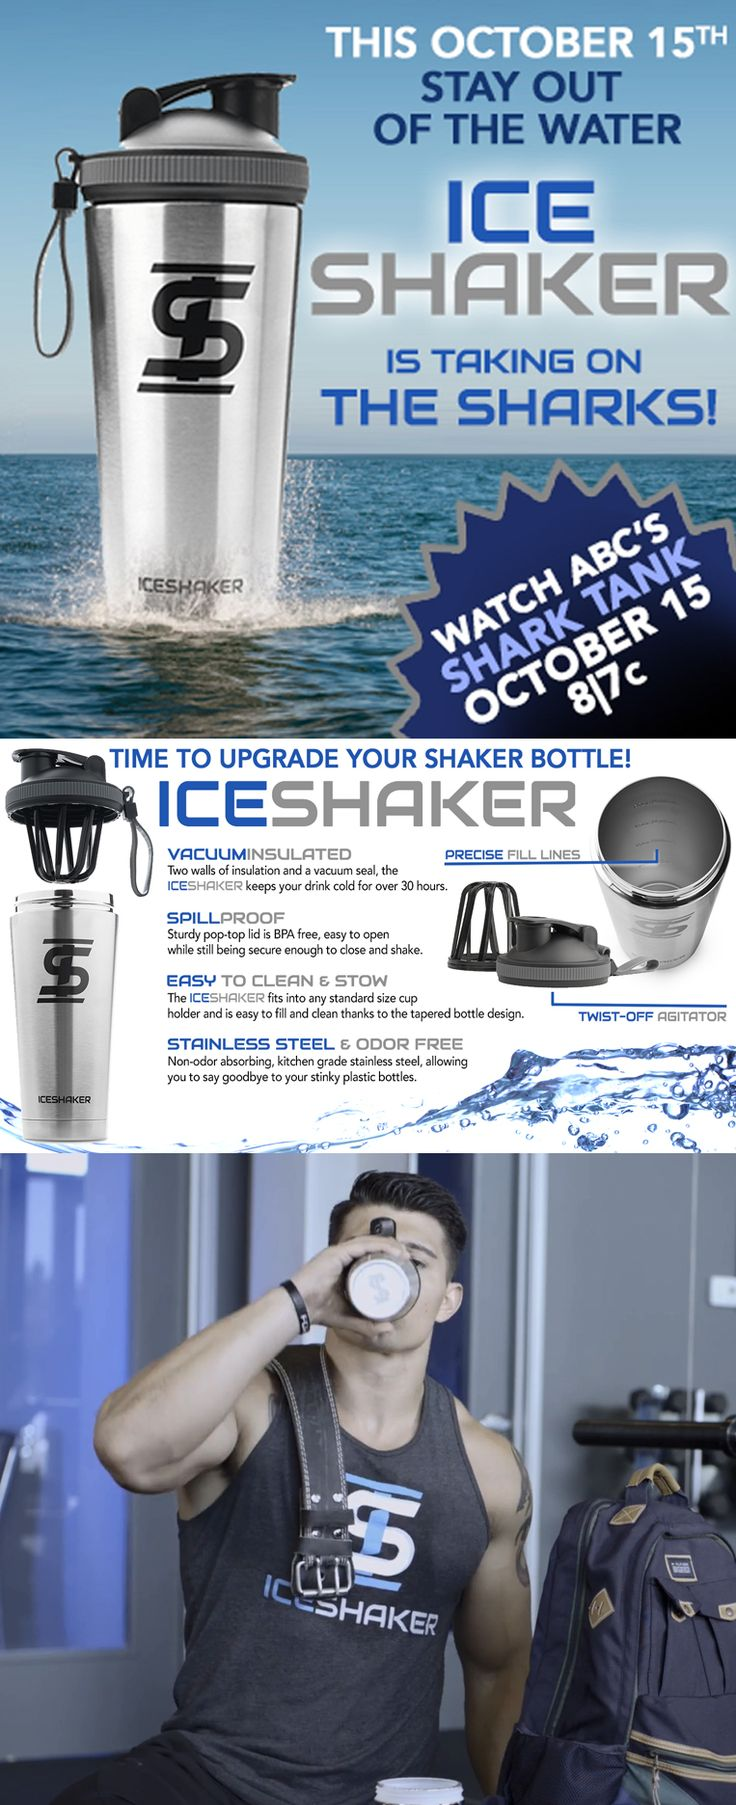 ABC's Shark Tank is back! Watch as Chris Gronkowski & Ice Shaker take on the sharks on October 15th, 2017. Don't forget to purchase yourself an Ice Shaker today before the shark tank rush! Ice Shaker makes a great gift for anyone that hits the gym or lives an active lifestyle. Your boyfriend, husband or any man in your life would love an ice shaker as a Christmas or Holiday gift!